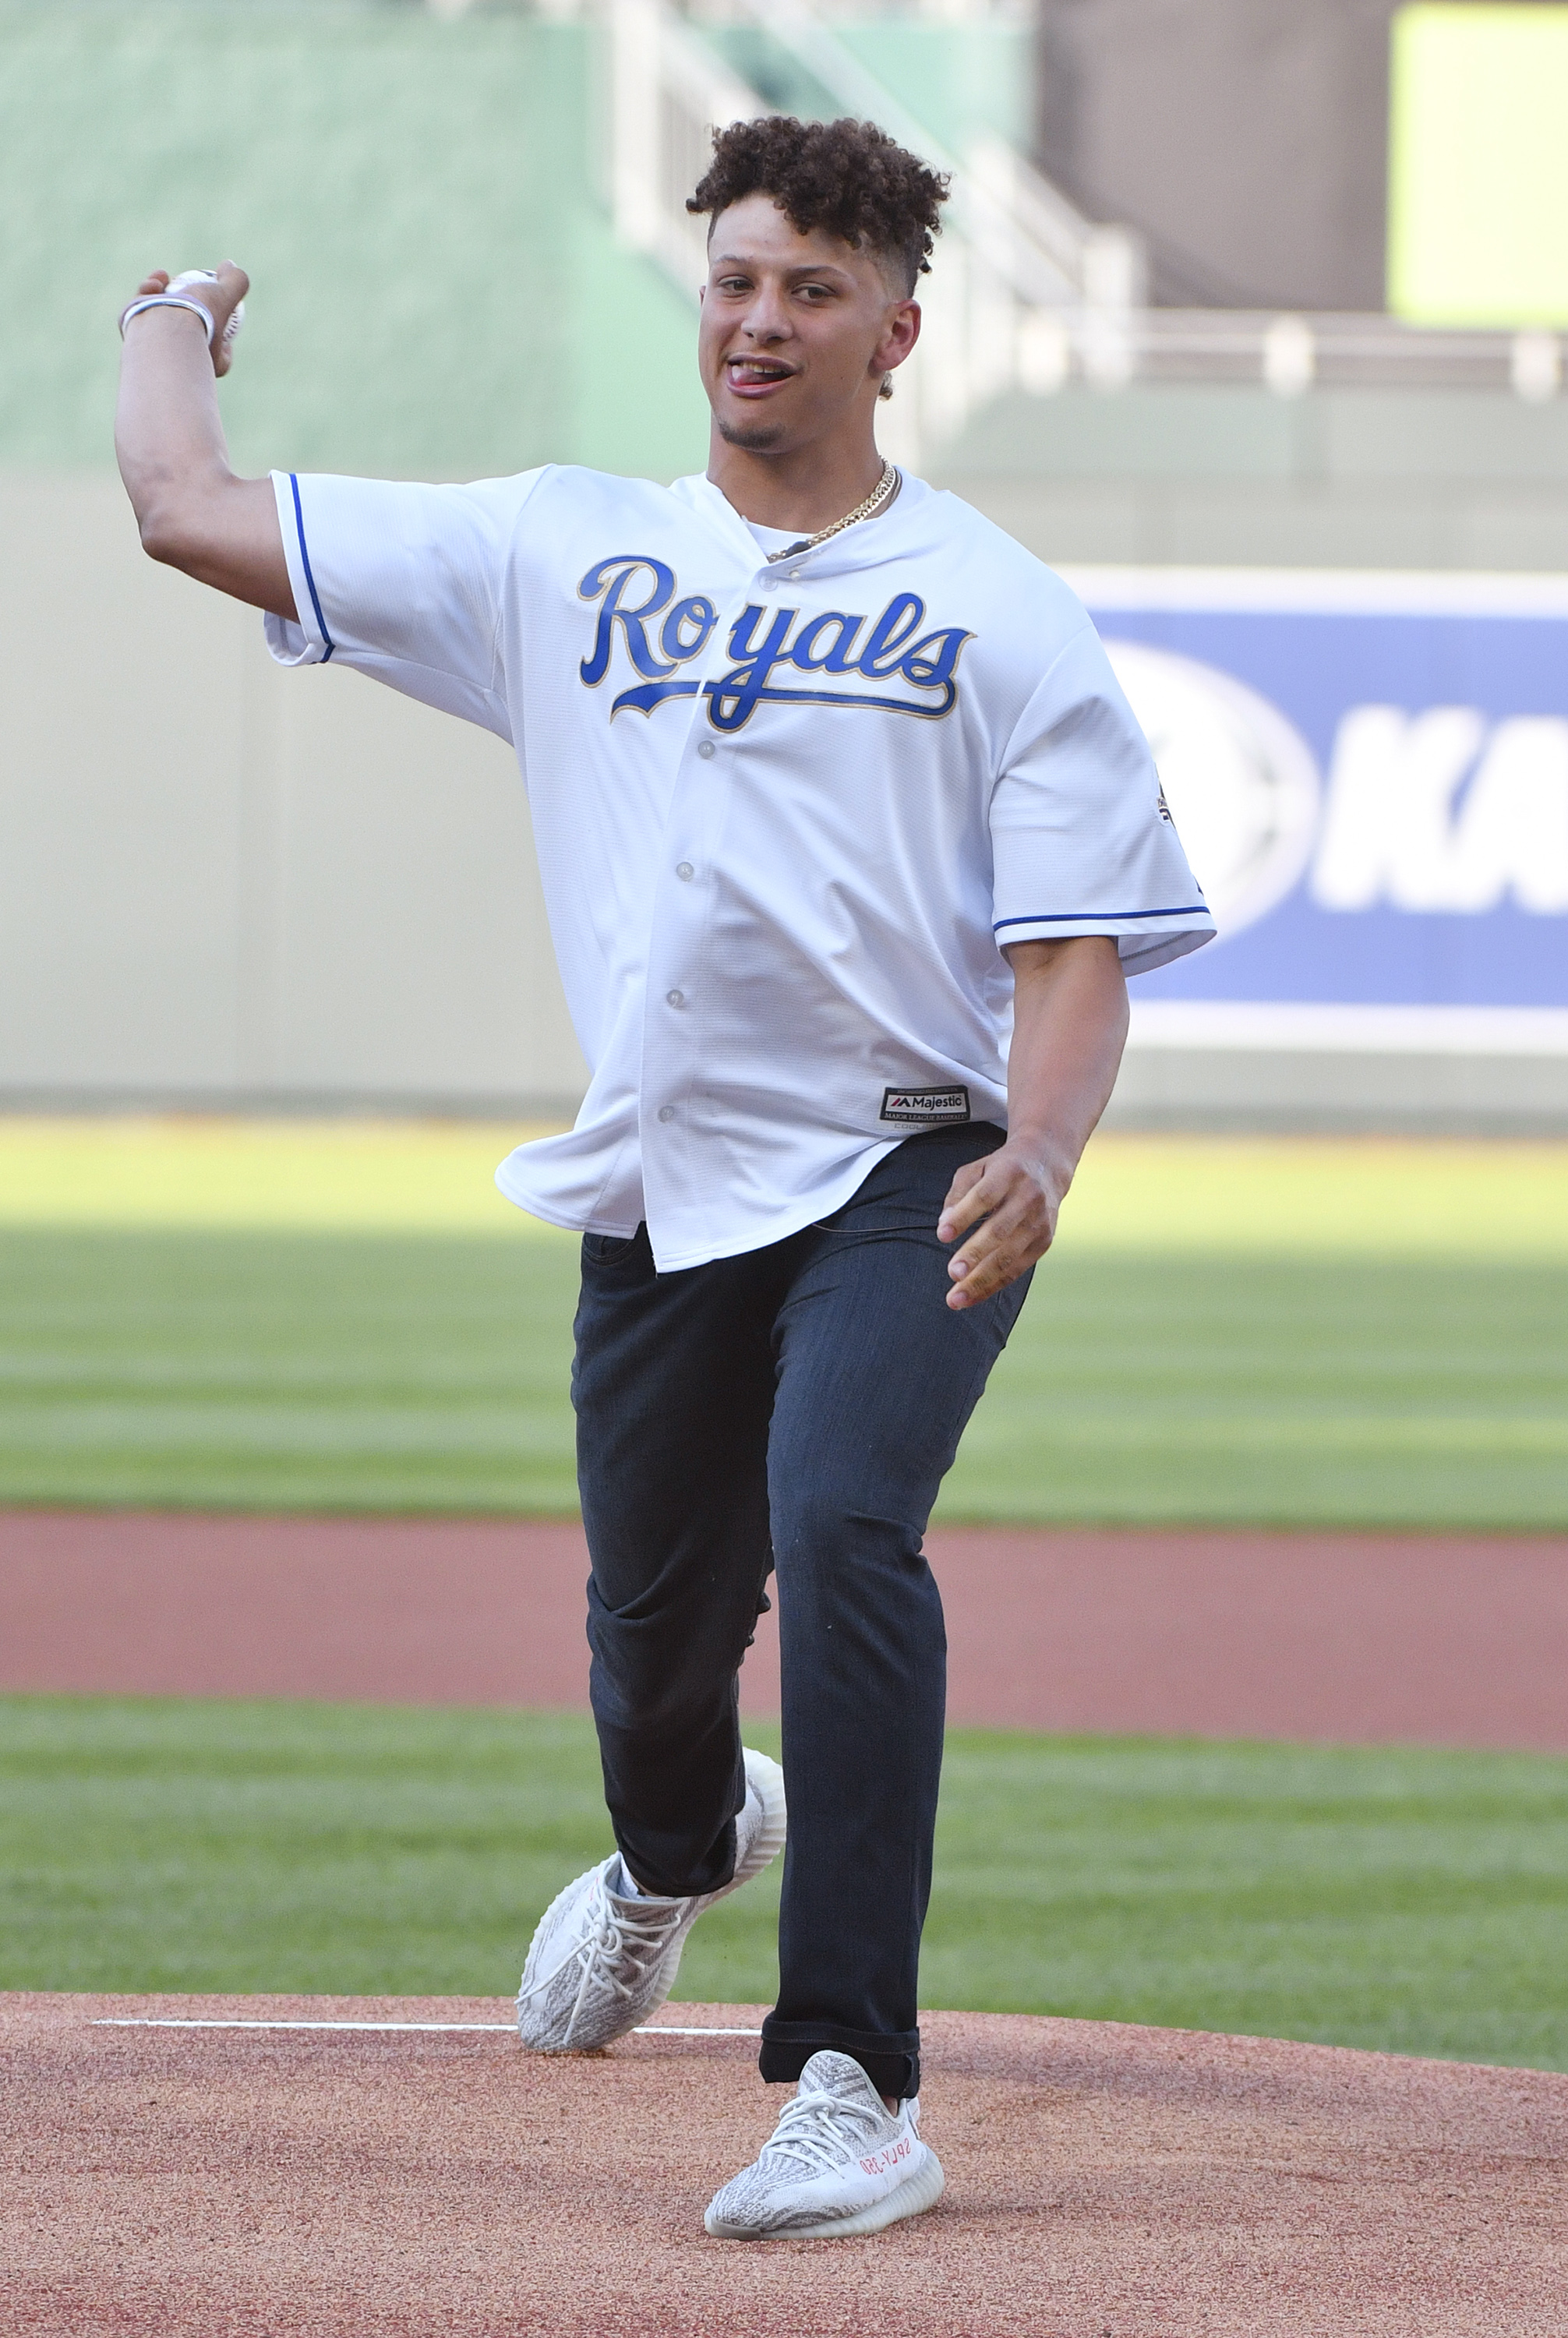 Quarterback Patrick Mahomes of the Kansas City Chiefs throws out the first pitch prior to a game between the New York Yankees and Kansas City Royals at Kauffman Stadium on May 18, 2018 in Kansas City, Missouri.